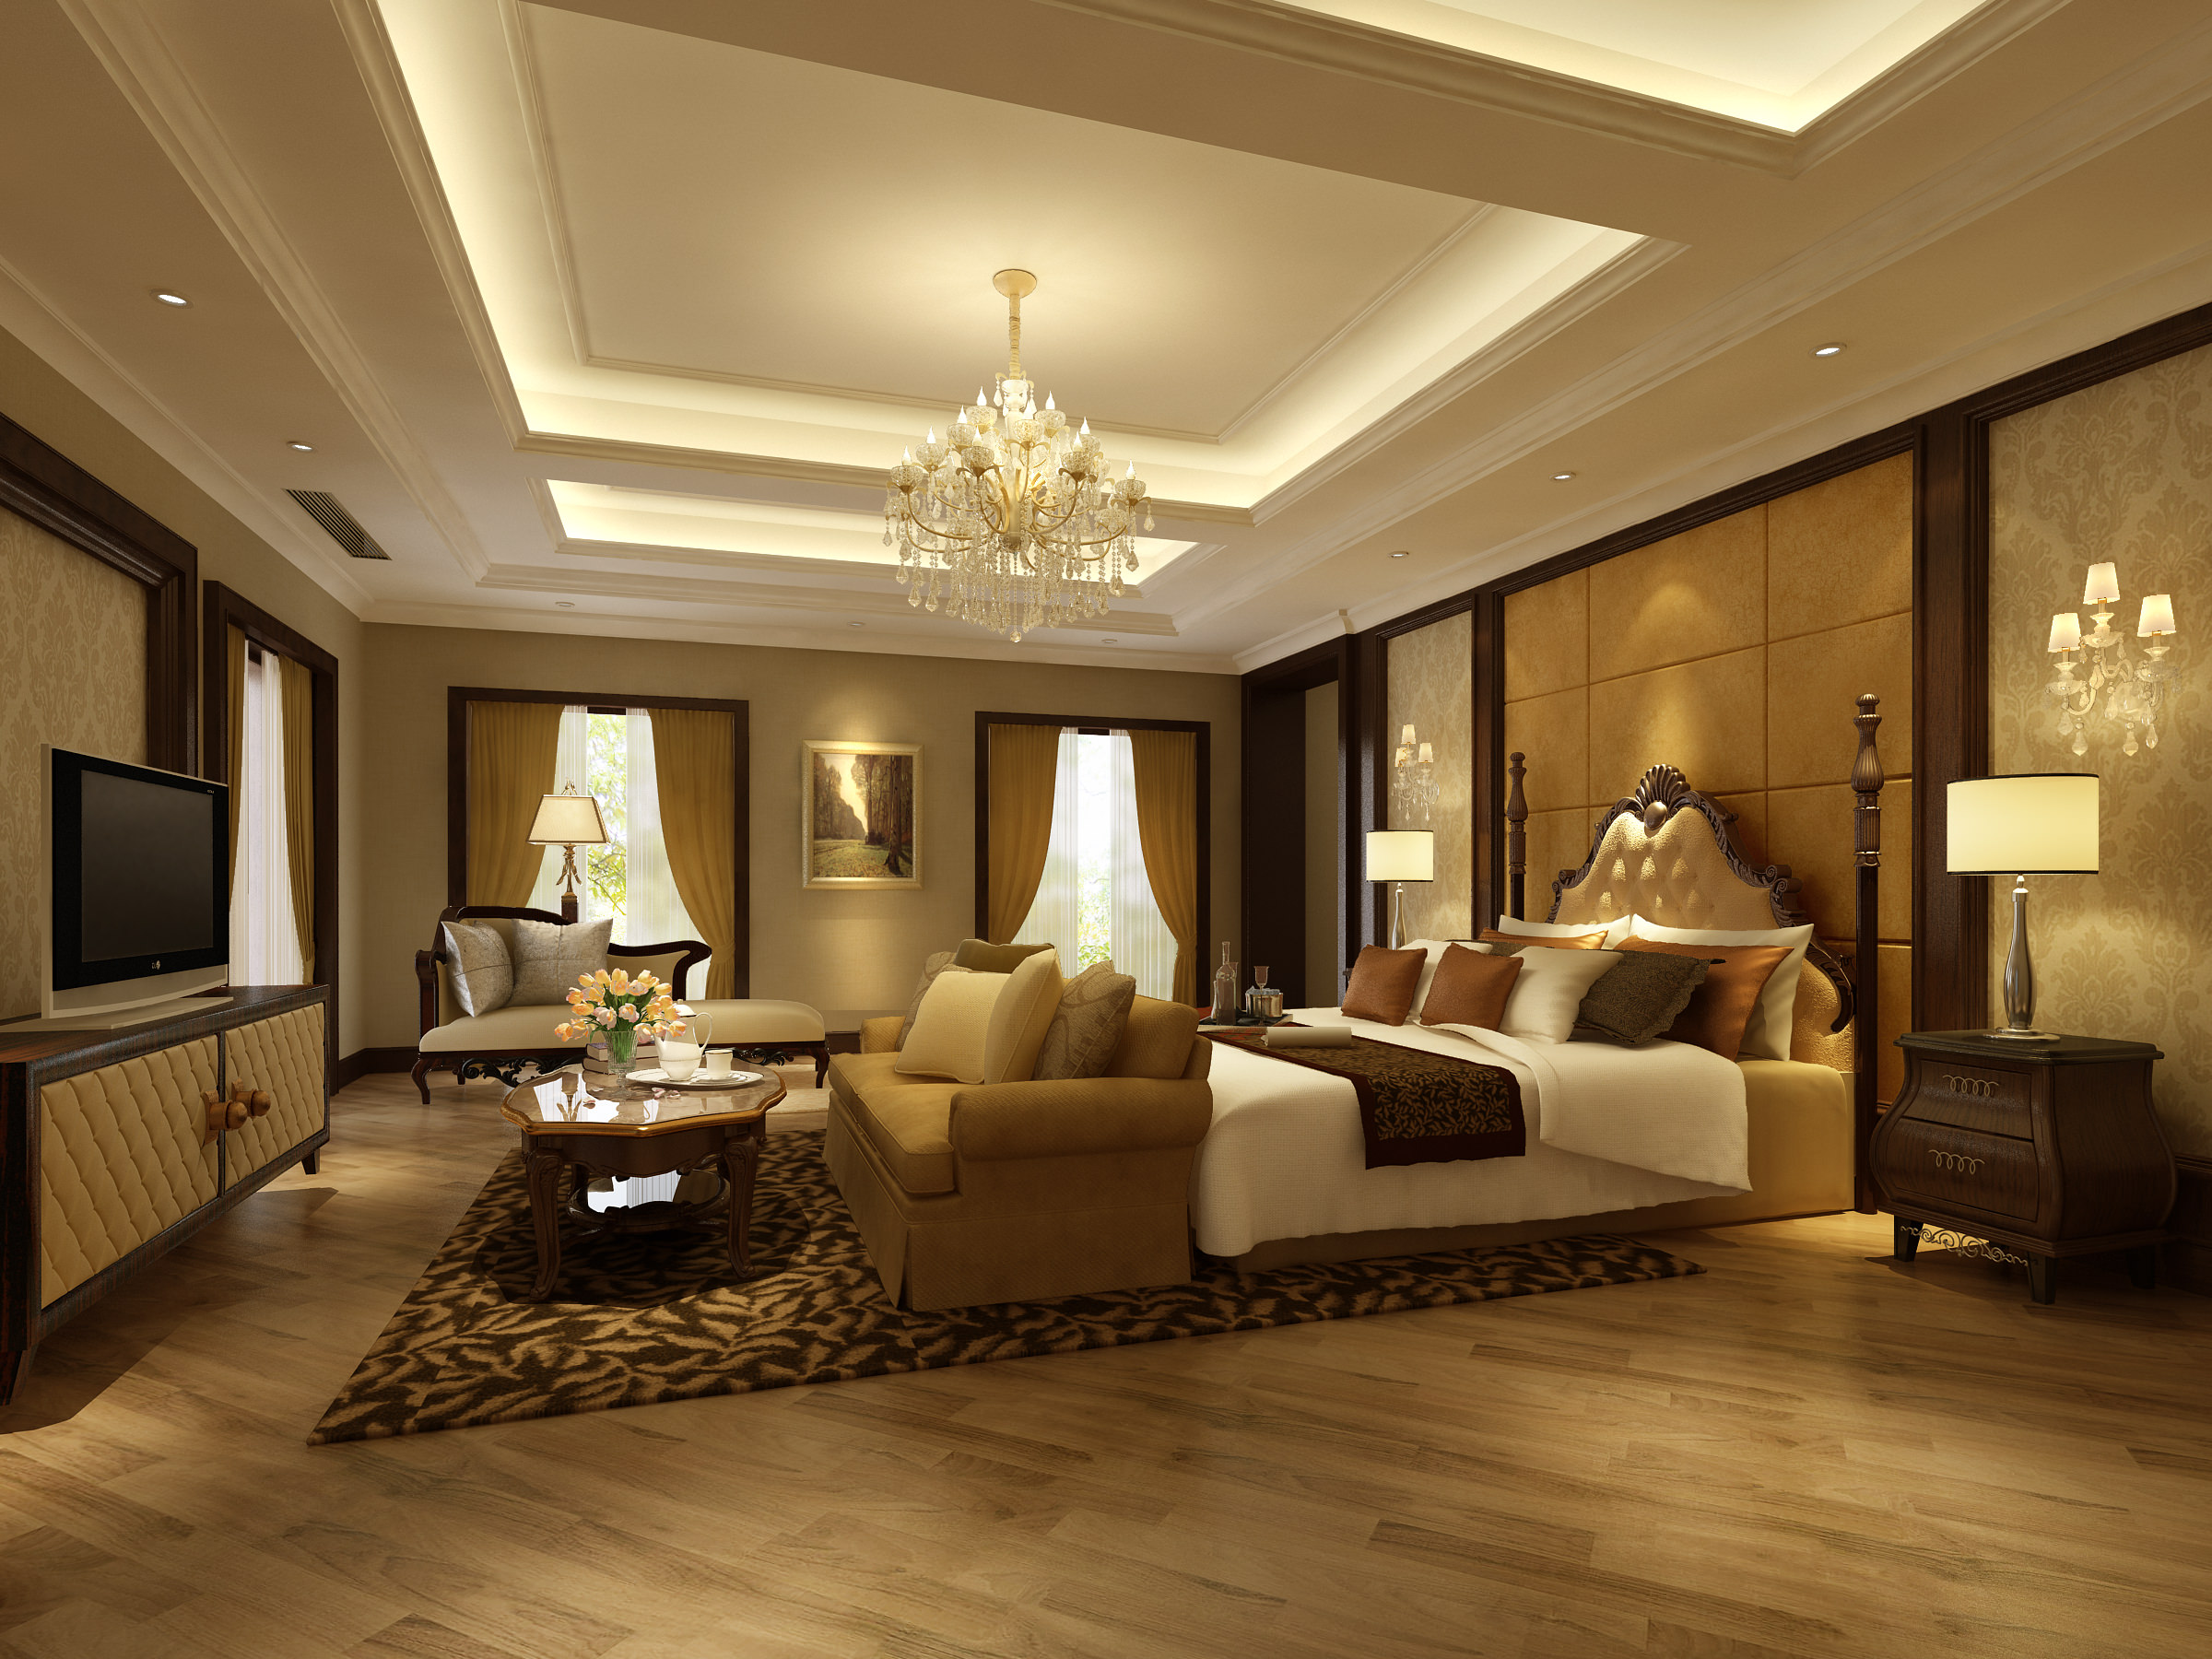 Bedroom or hotel room 3d model max 3d room interior